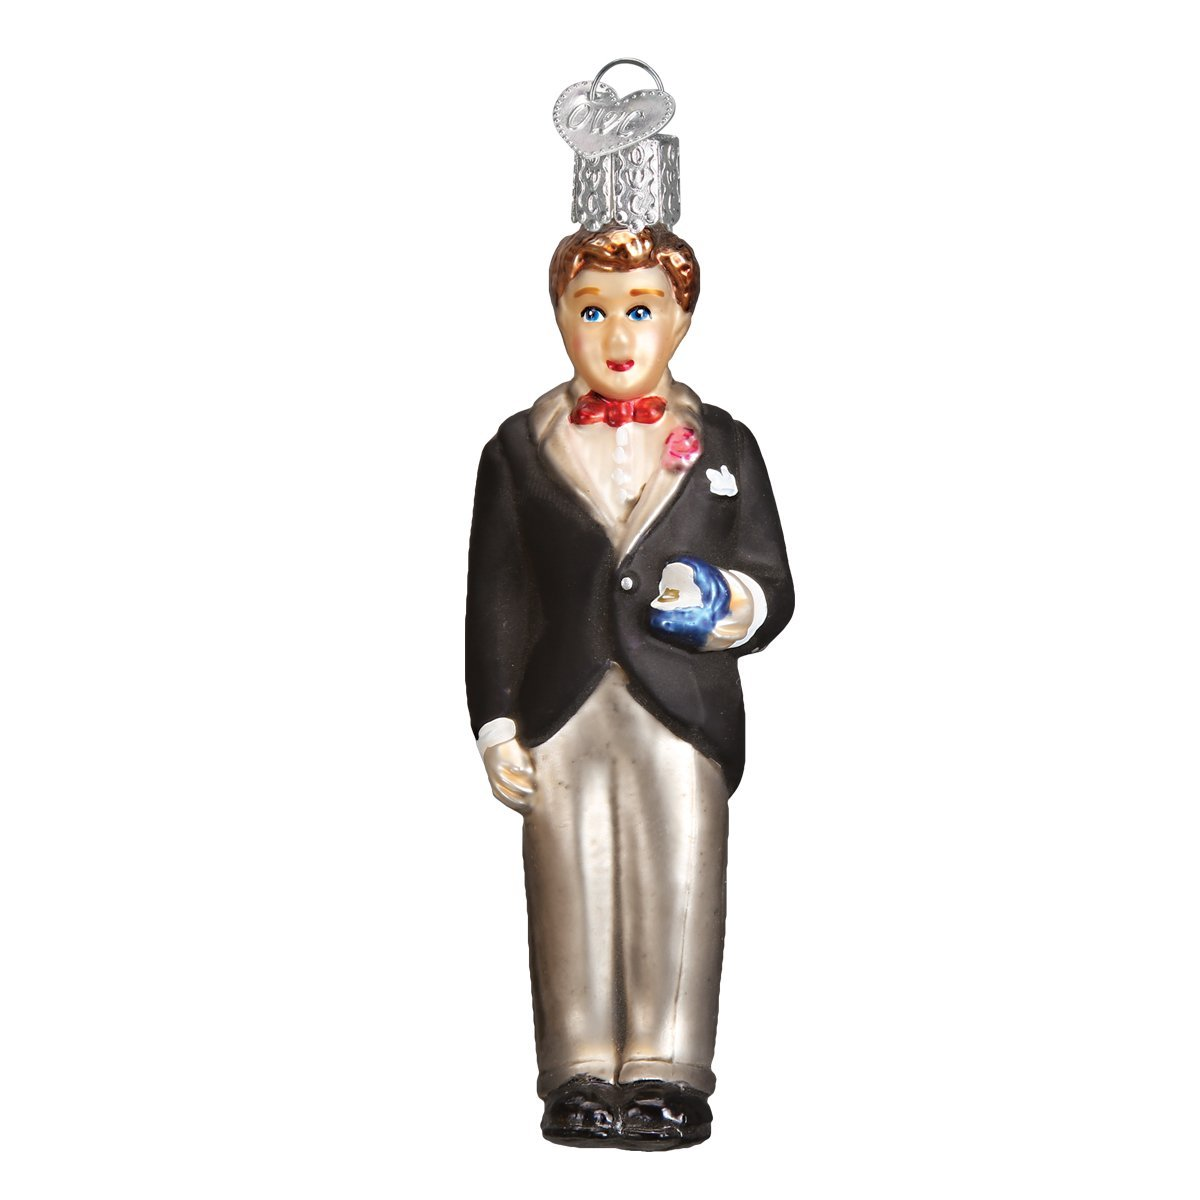 Old Word Christmas Groom Brunette Ornament | Putti Christmas Decorations